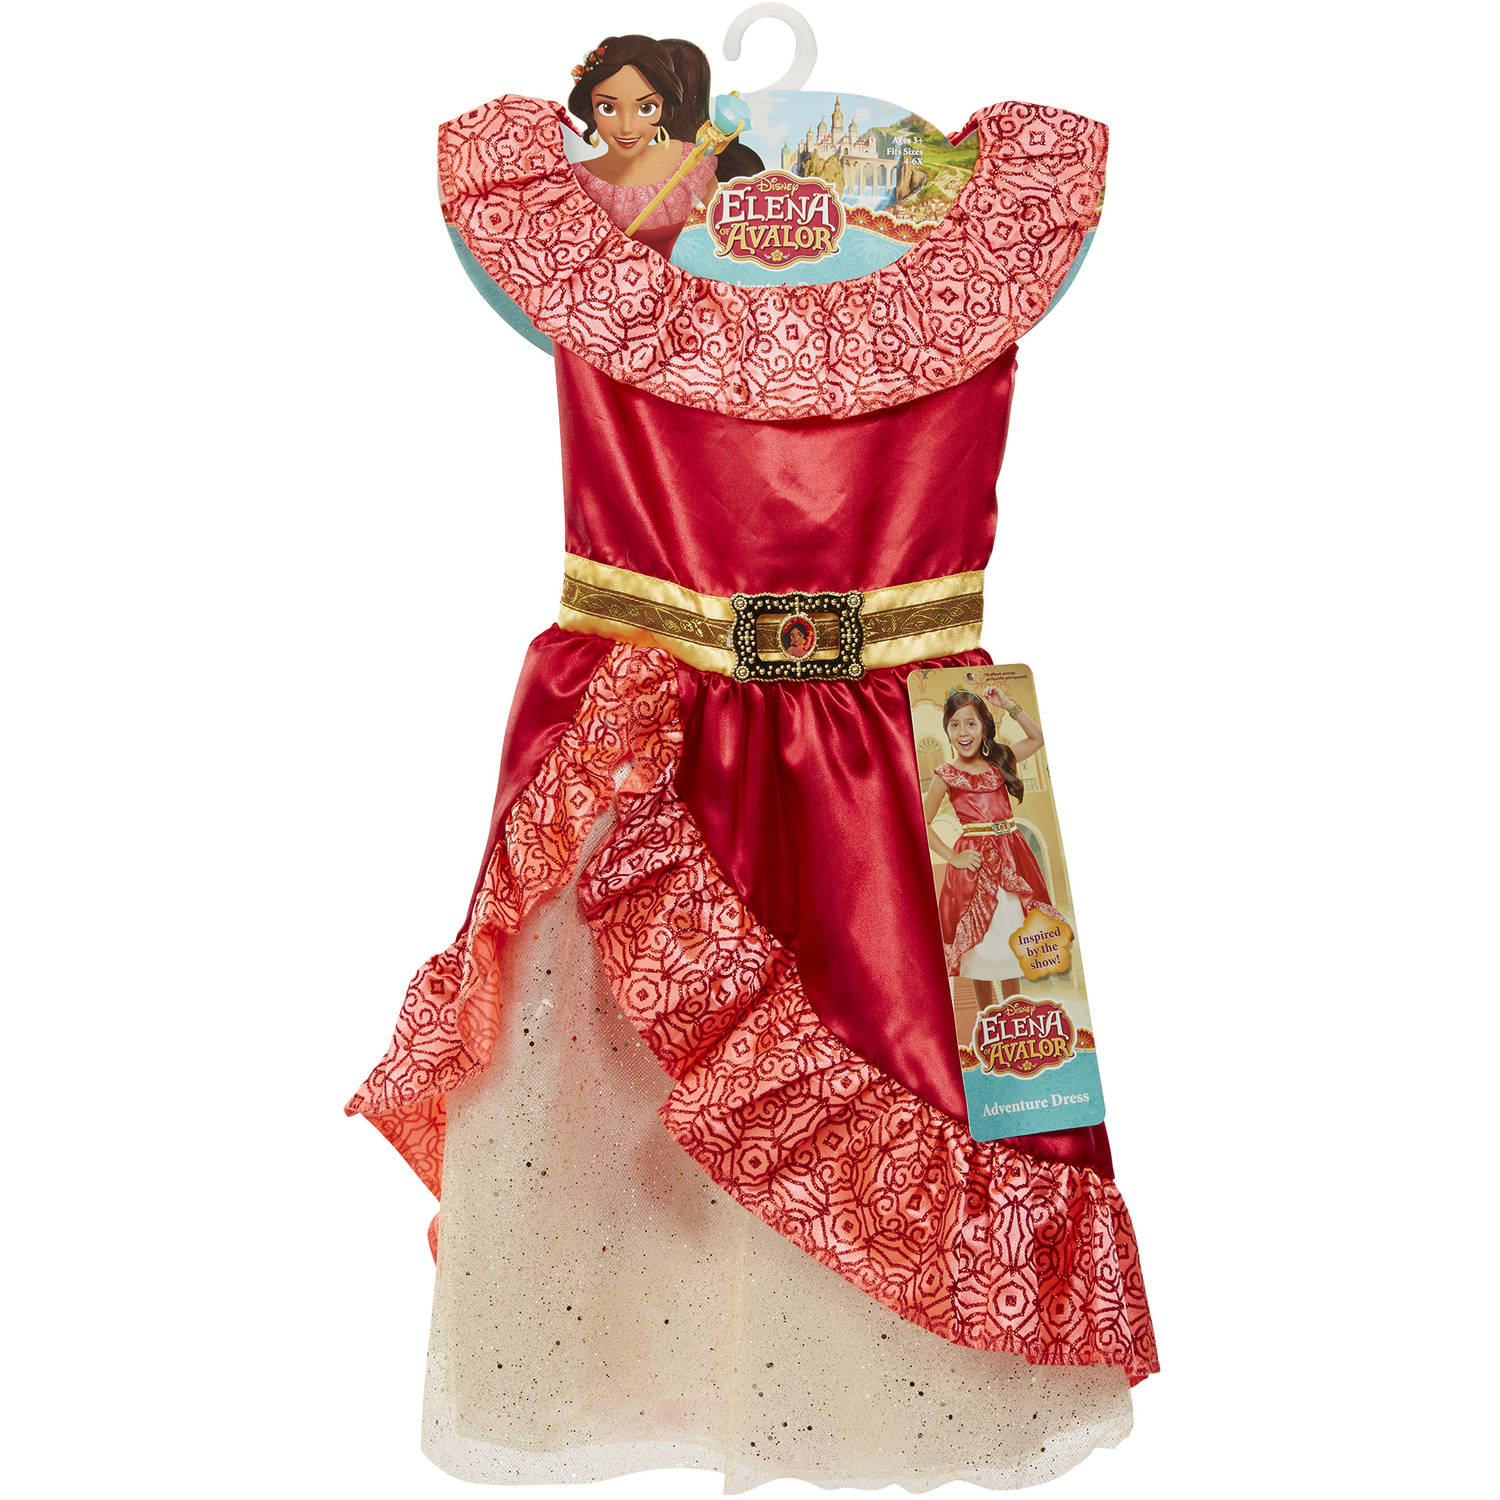 Disney Princess Elena of Avalor Adventure Dress